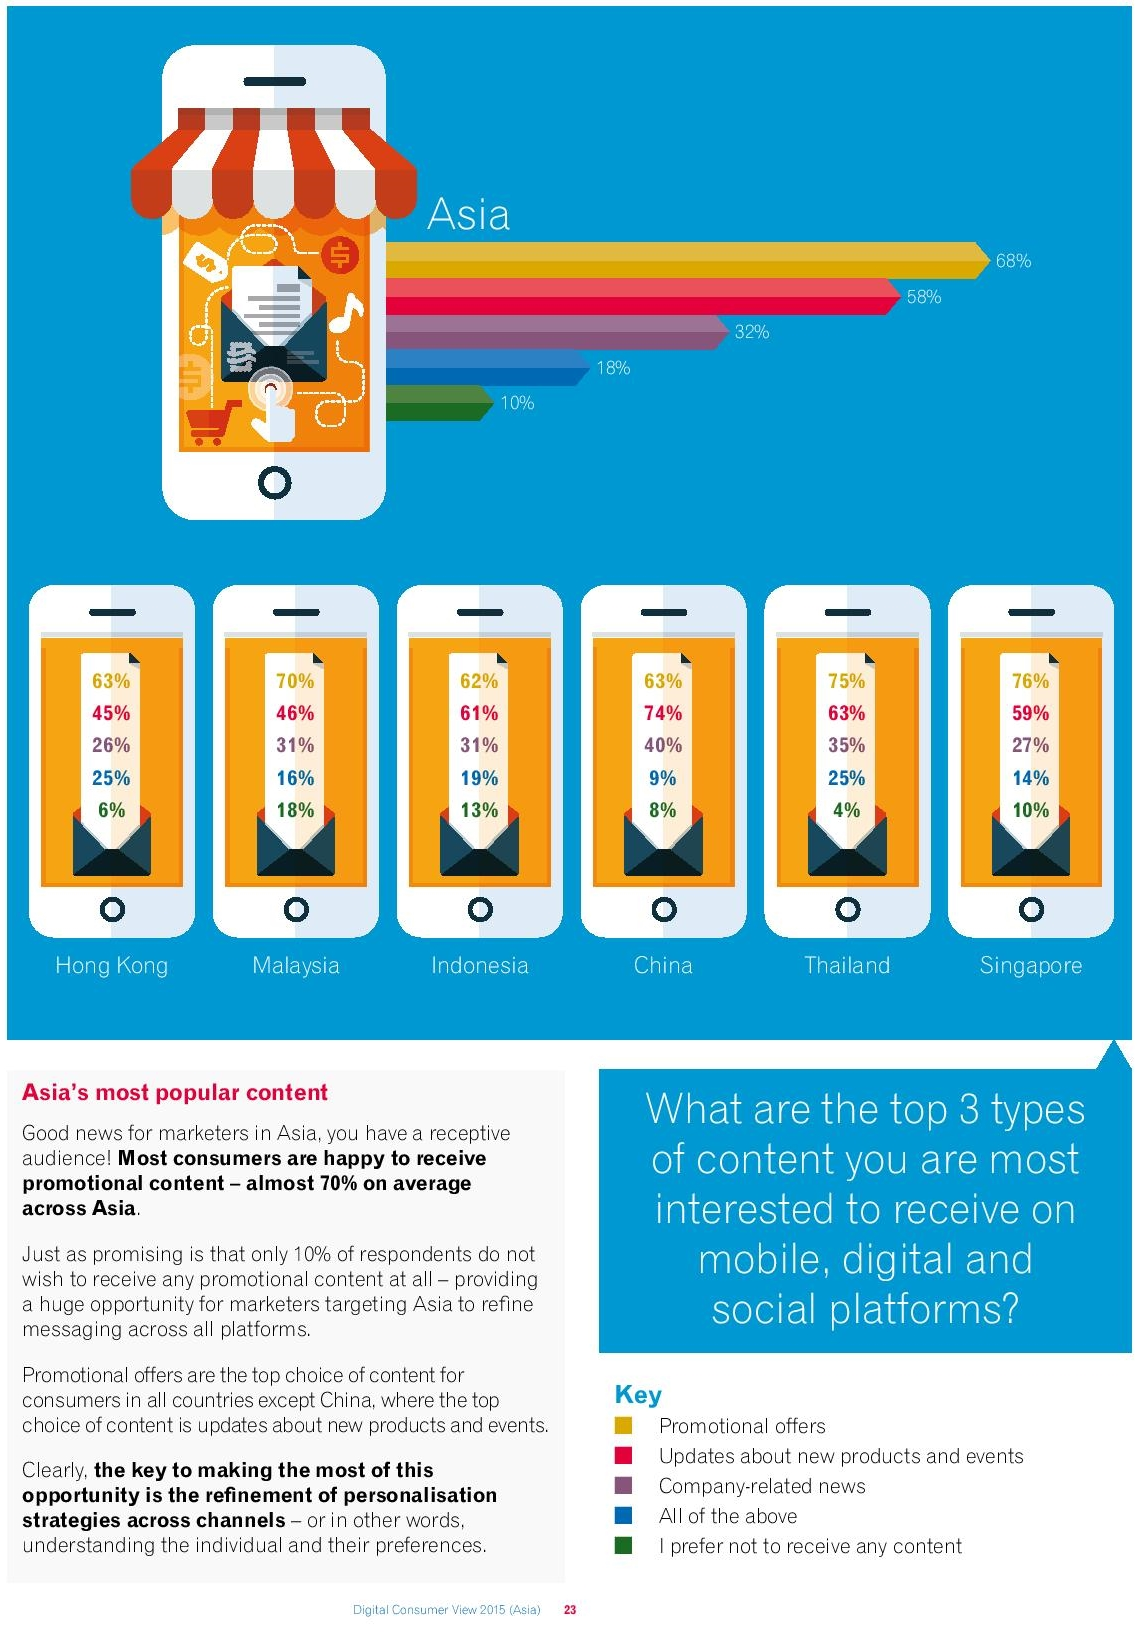 Digital Consumer View 2015 (Asia)-page-024